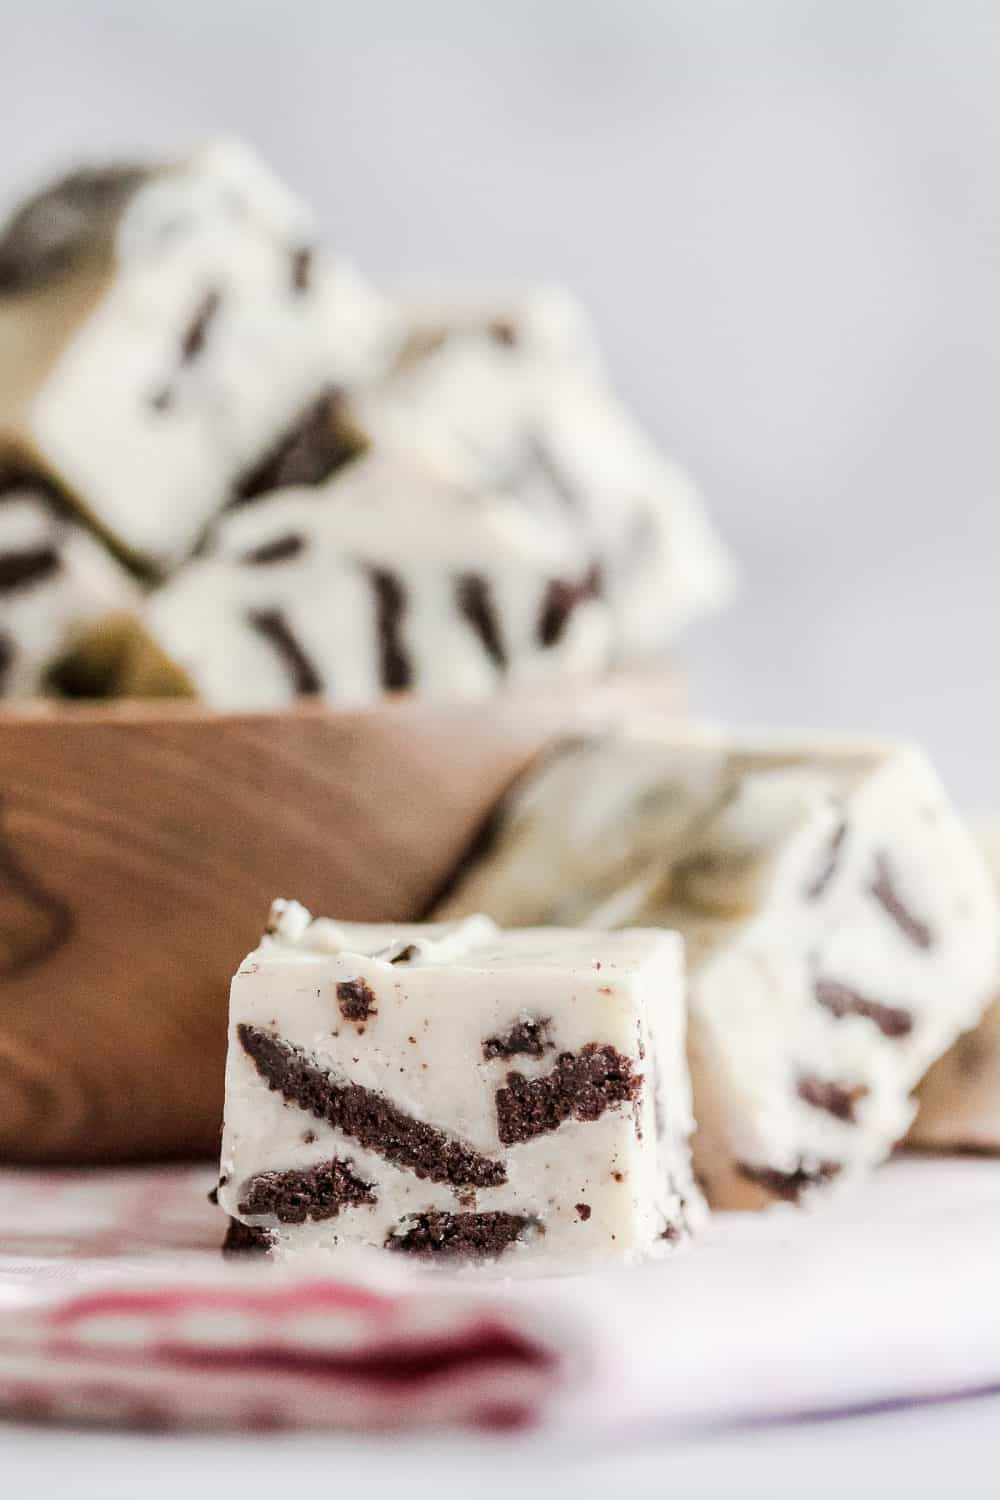 With just 4 ingredients and a few minutes, you can whip up this crowd-pleasing easy cookies and cream fudge! This easy fudge recipe is perfect for parties or a sweet edible gift.* GoodieGodmother.com